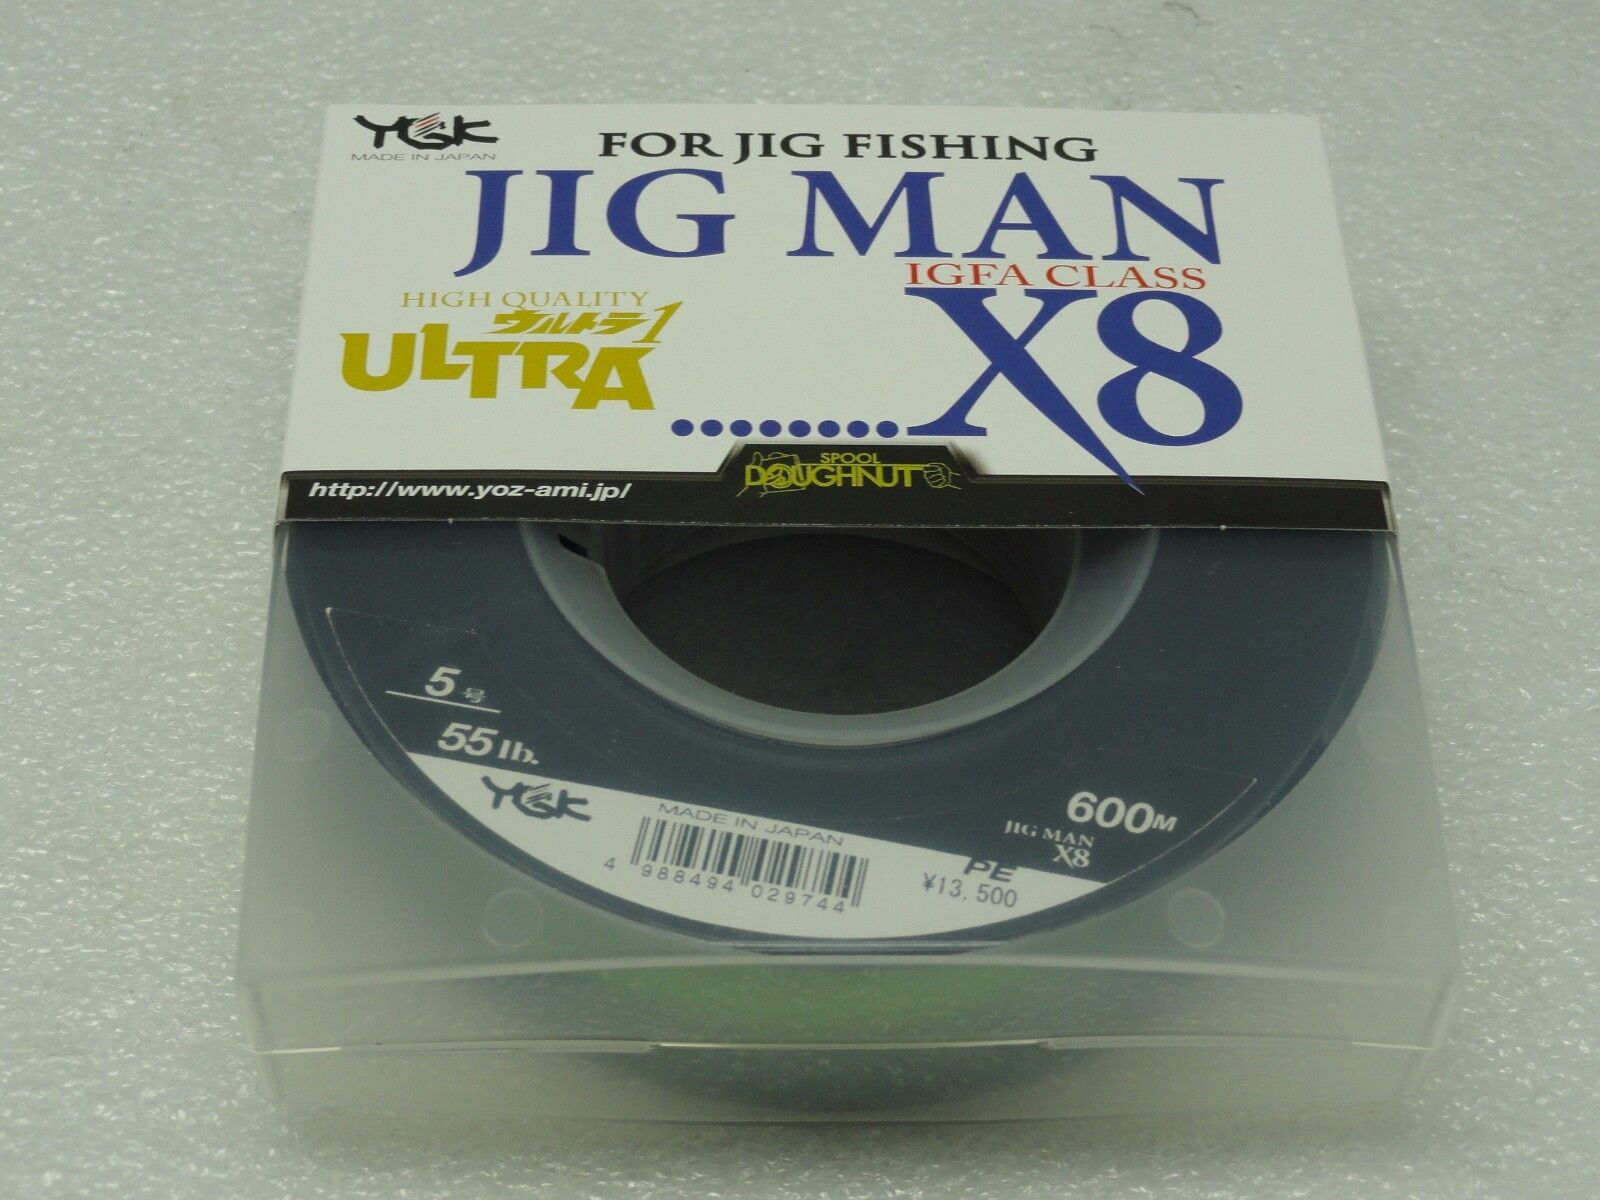 YGK JIG MAN IGFA CLASS X8 8 Braided PE PE PE 5 line SPECTRA  5 55lb 600m Made in Japan 976c7c